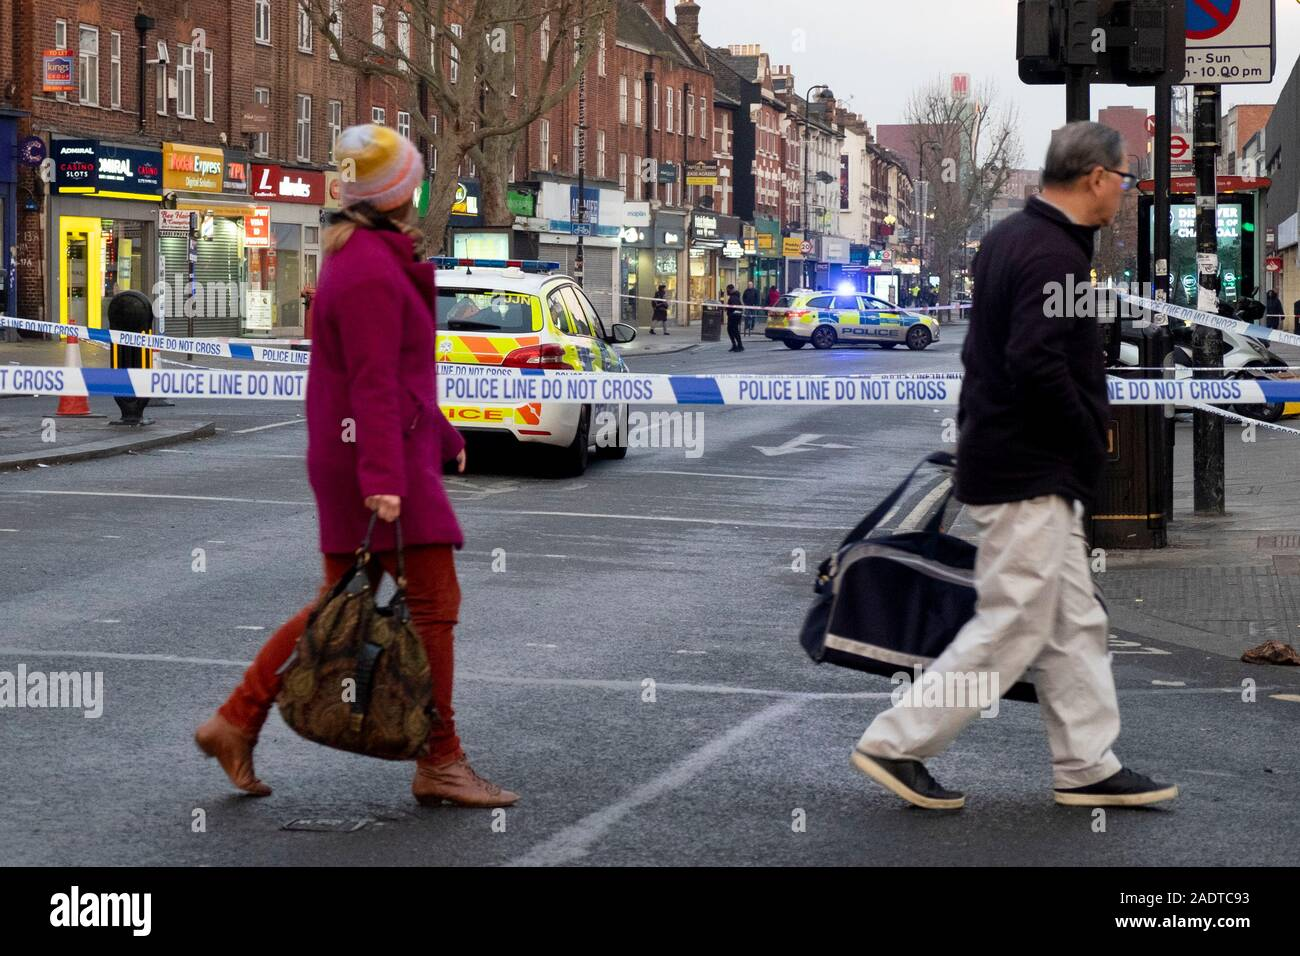 Turnpike Lane, North London, UK. 5th Dec, 2019. Police seal off the scene of a shooting outside Turnpike Lane in north London. A teenager was killed at around 11pm on 4th December (c) Credit: Paul Swinney/Alamy Live News Stock Photo